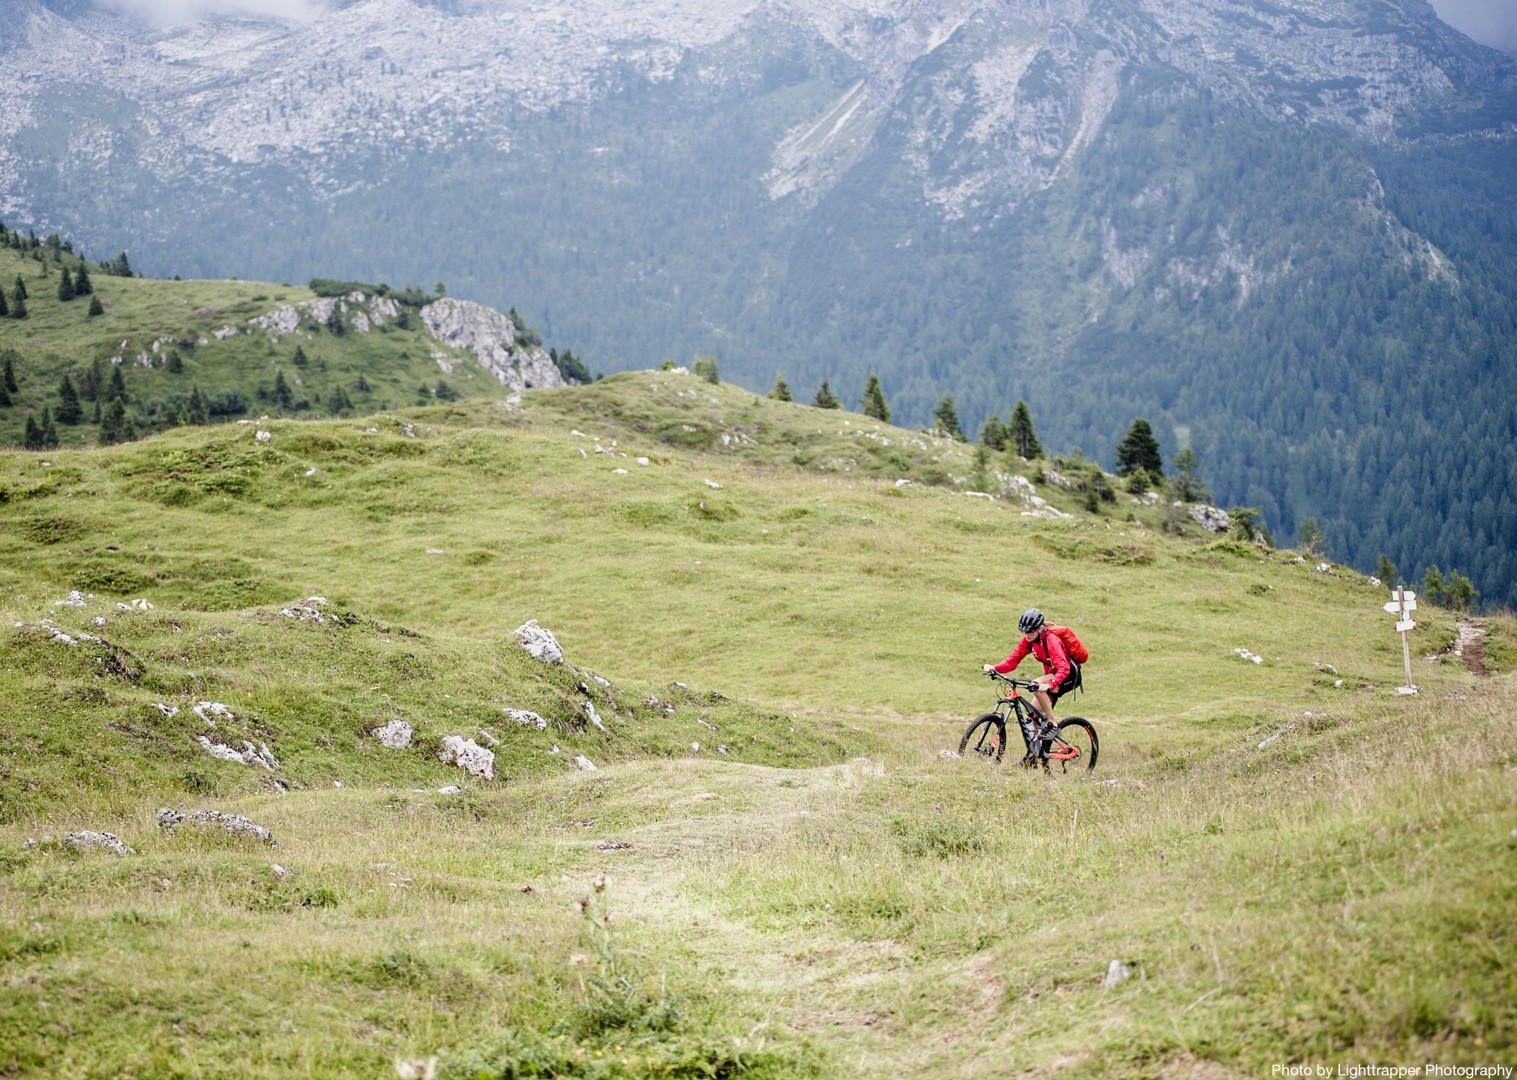 val-di-susa-guided-mountain-bike-holiday-italy-and-france-alpine-adventure.jpg - Italy and France - Alpine Adventure - Guided Mountain Bike Holiday - Mountain Biking